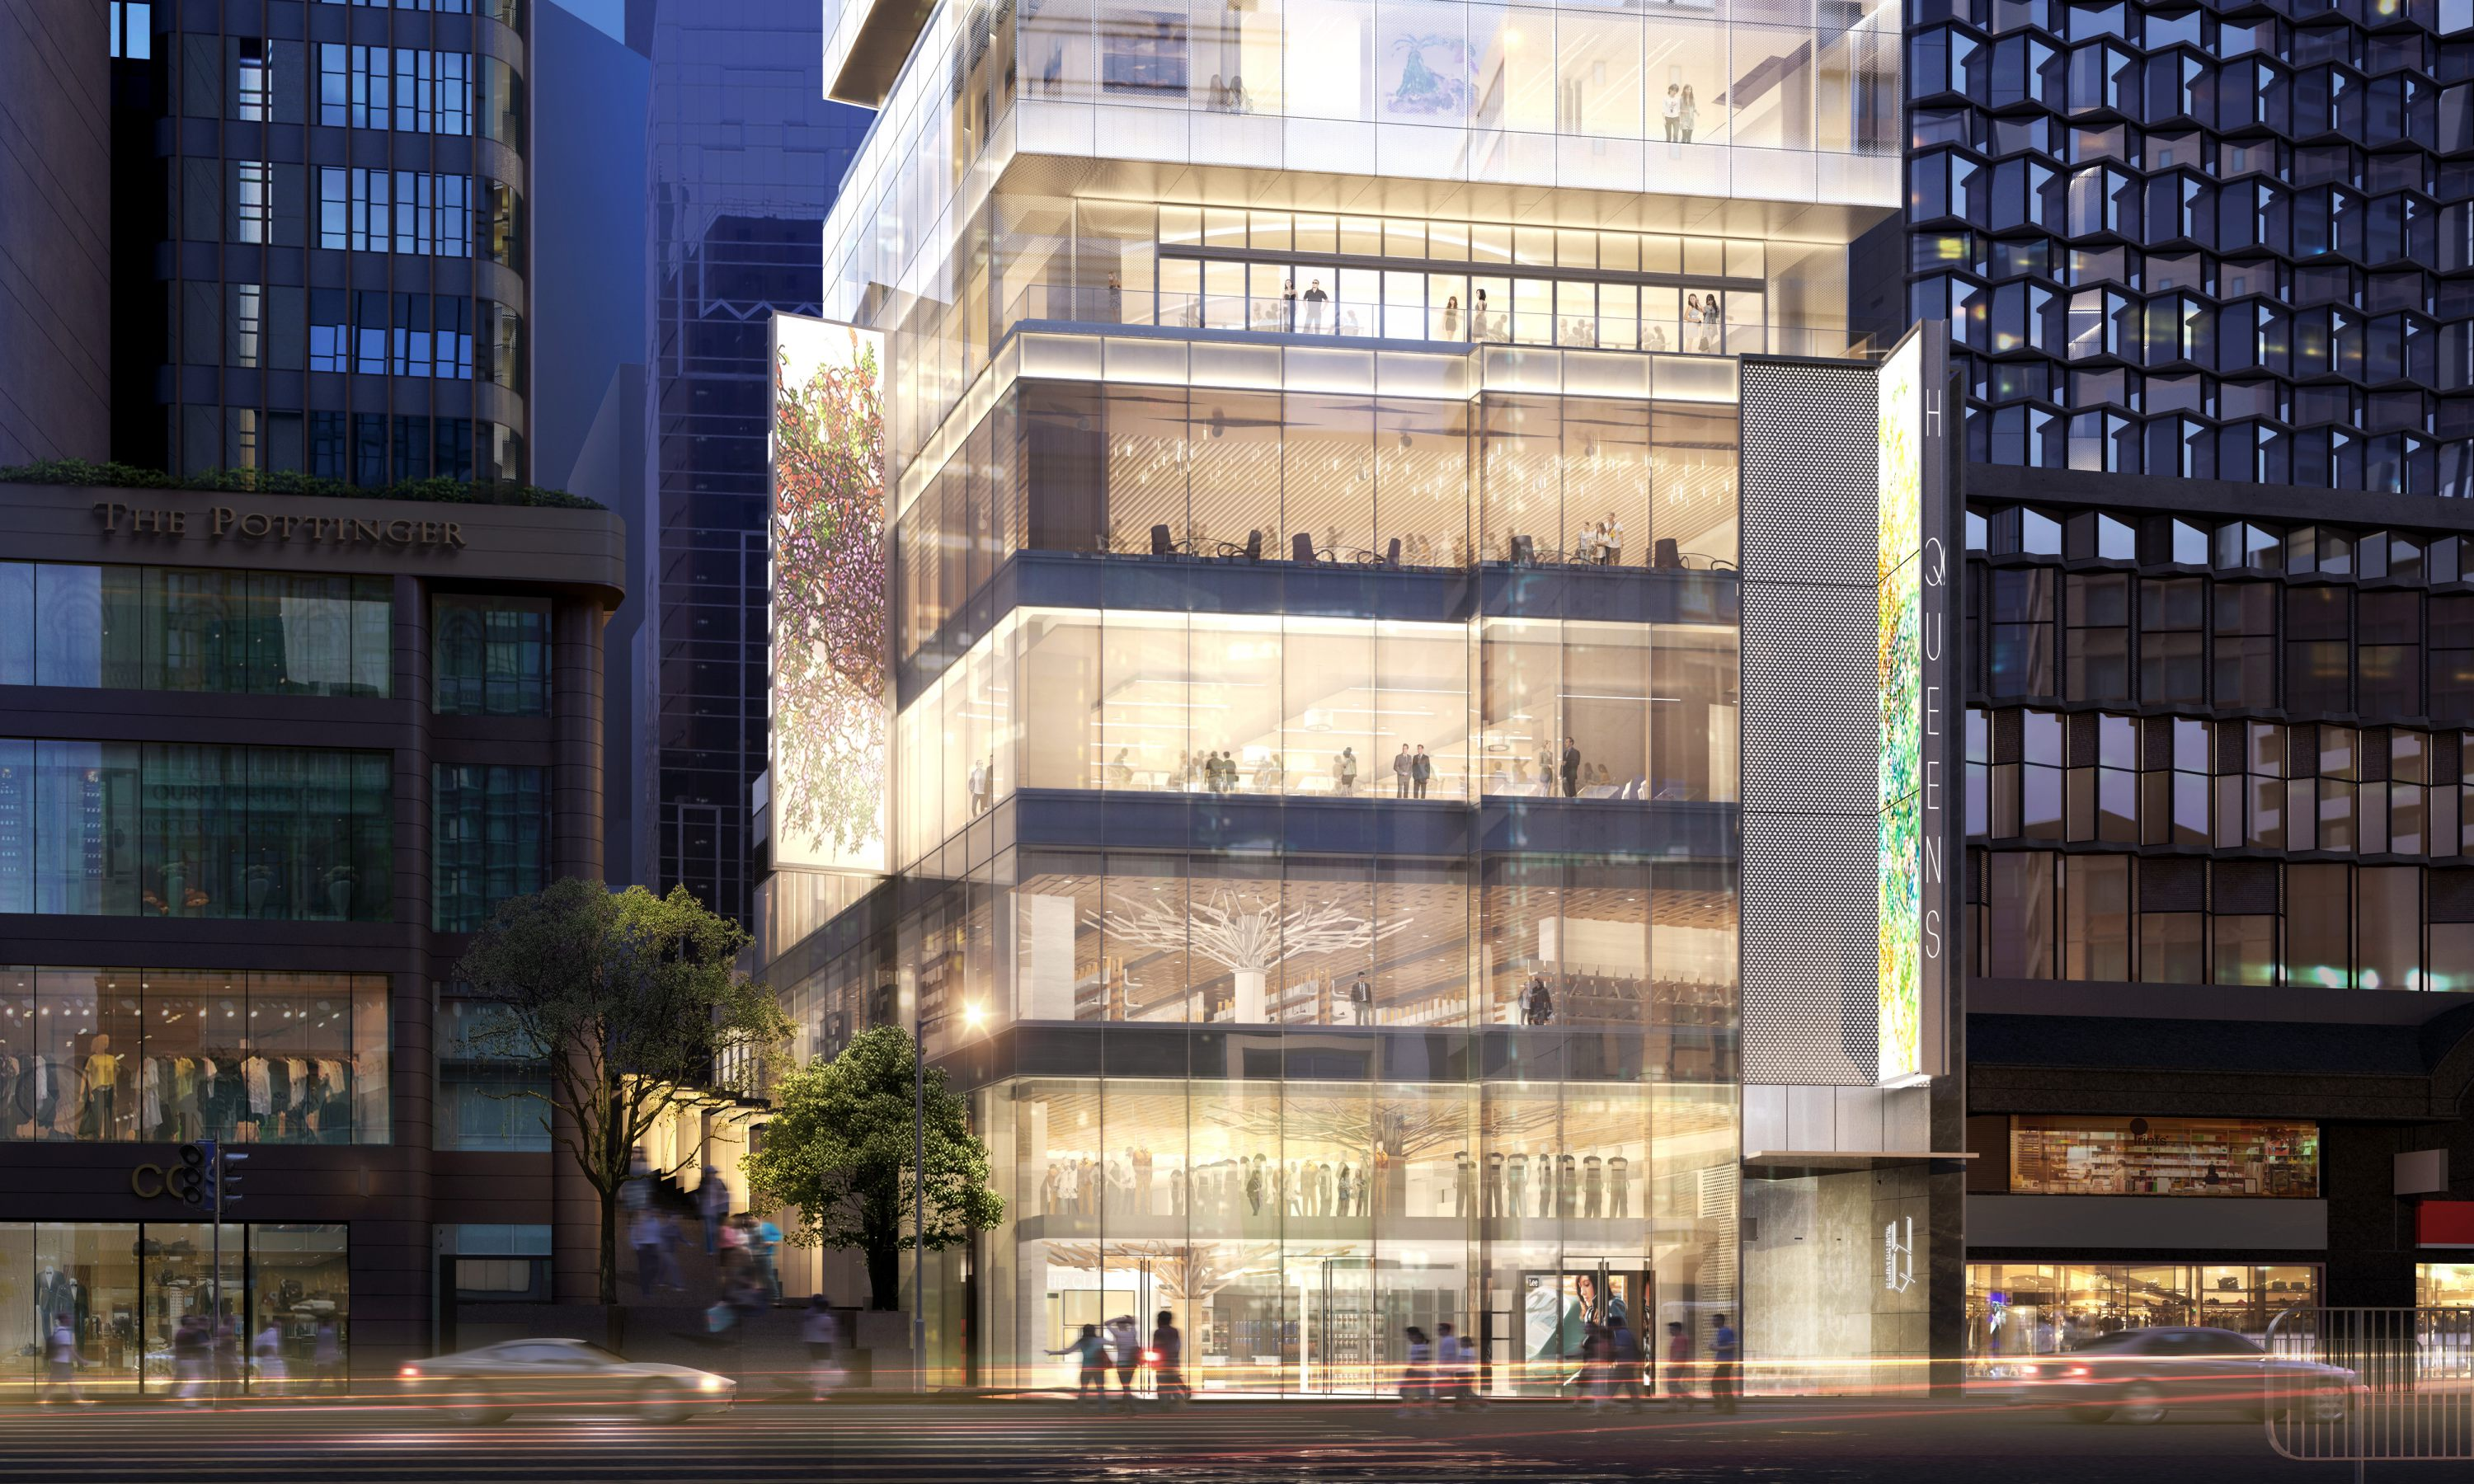 What's inside H Queen's: The first exclusive art and lifestyle tower in the world